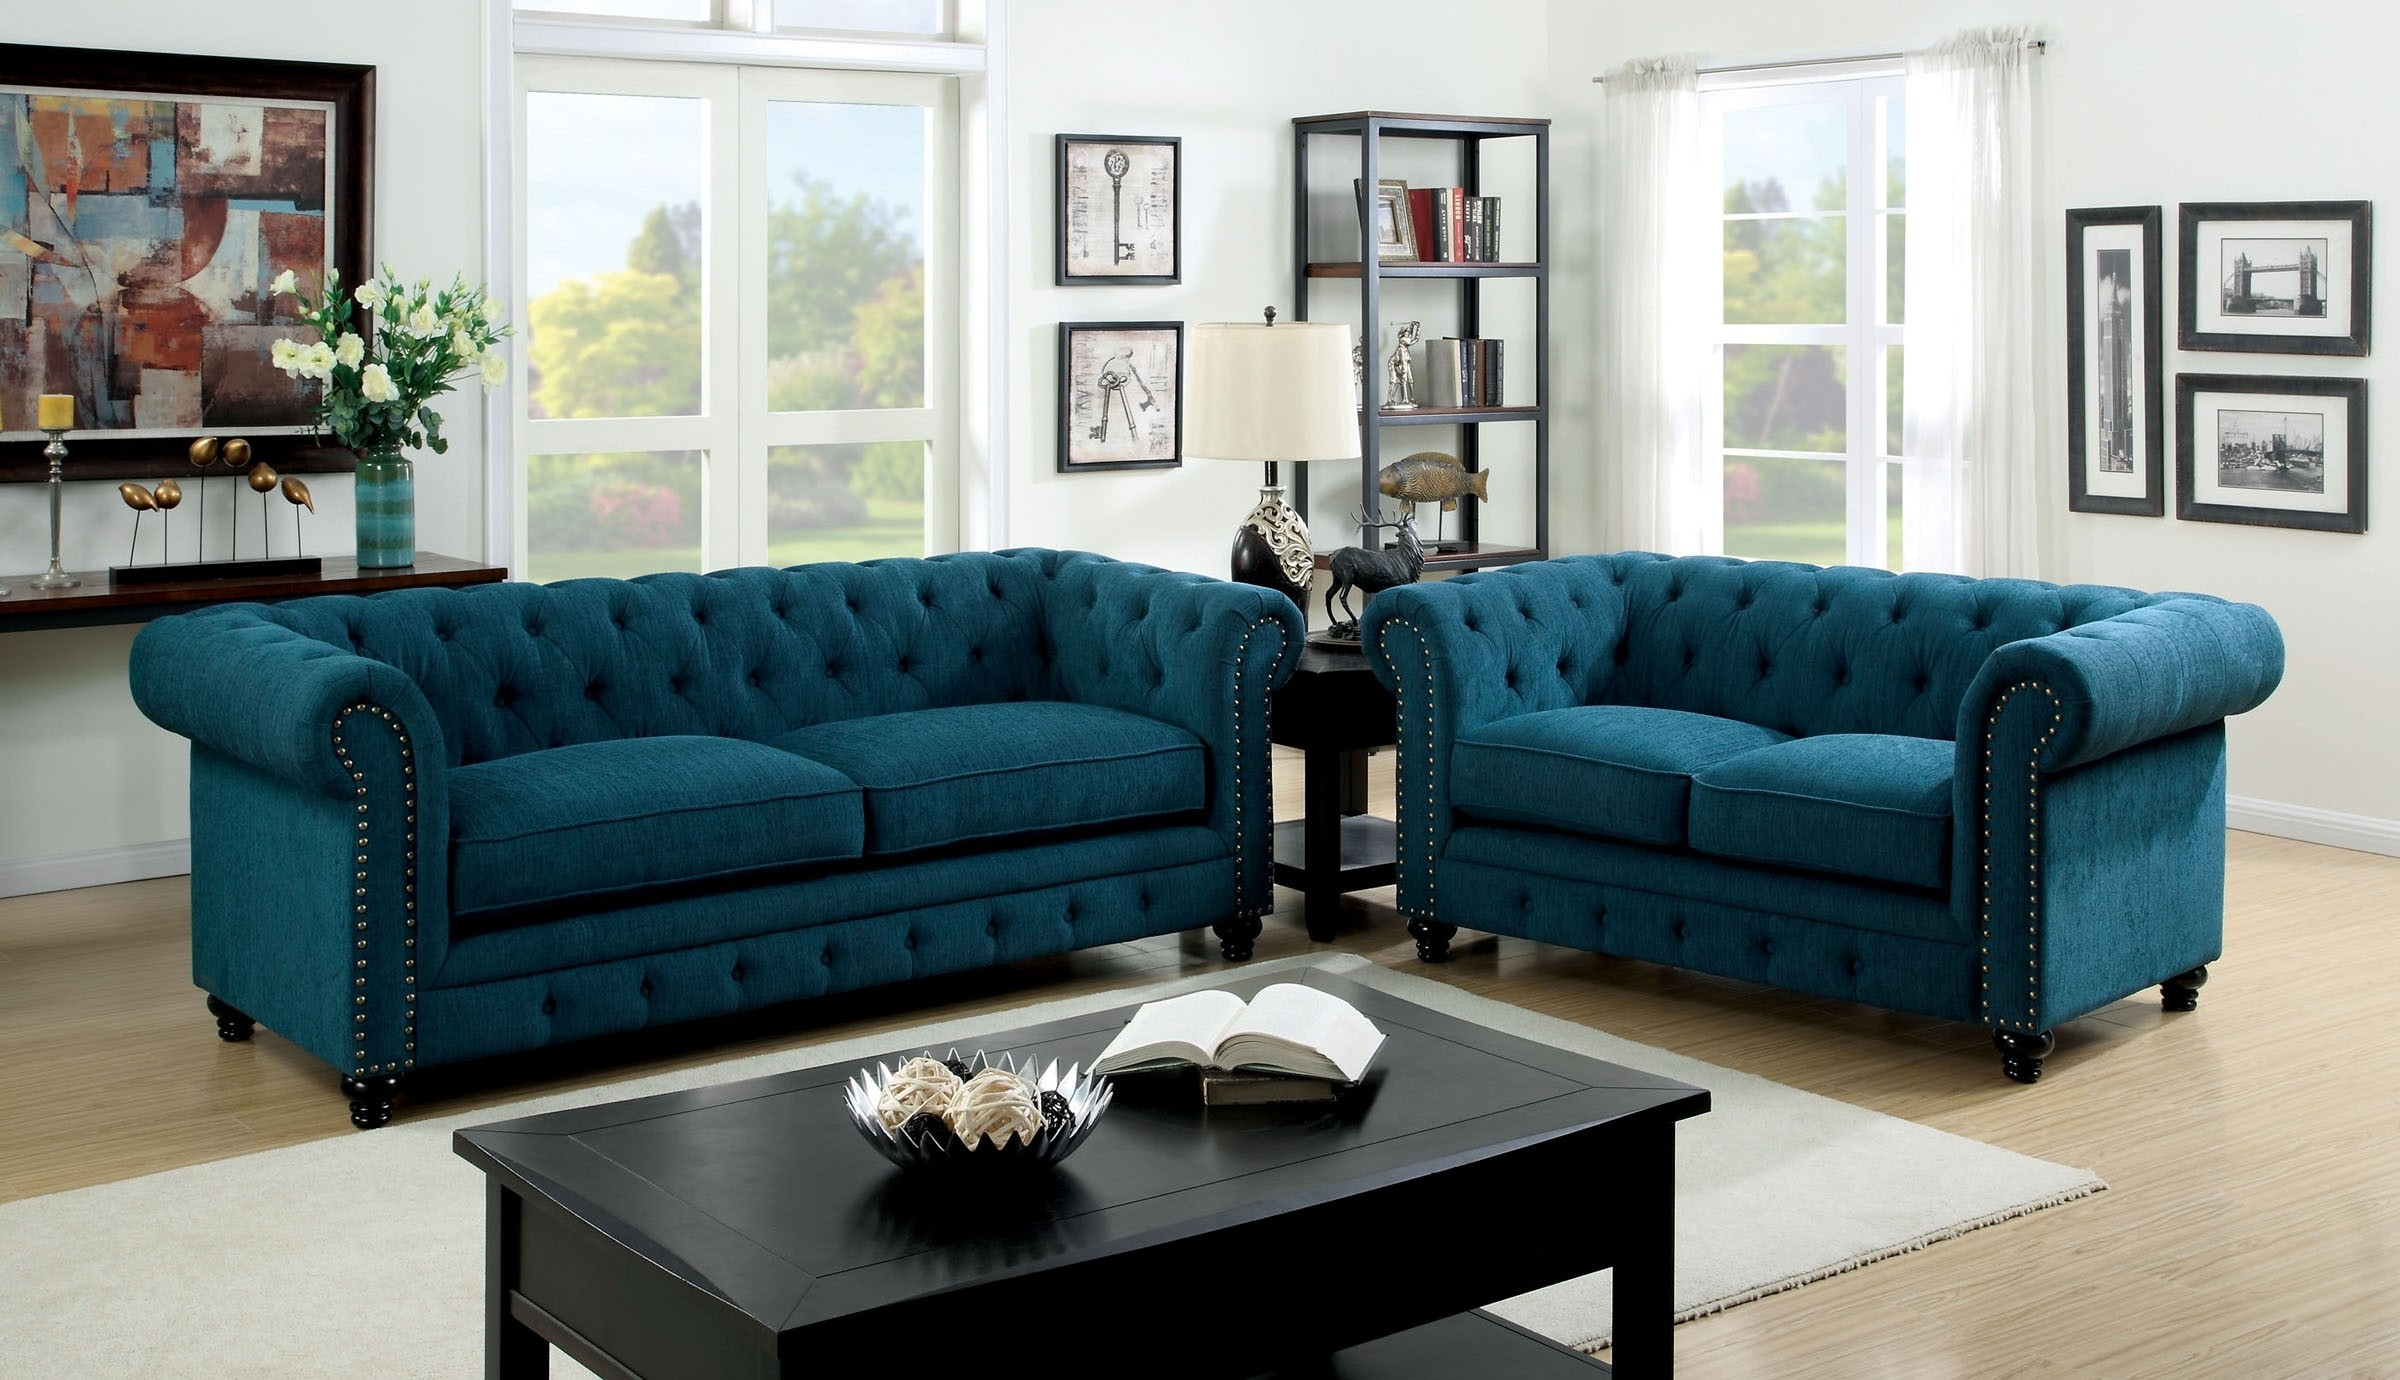 Value City intended for Favorite Evansville In Sectional Sofas